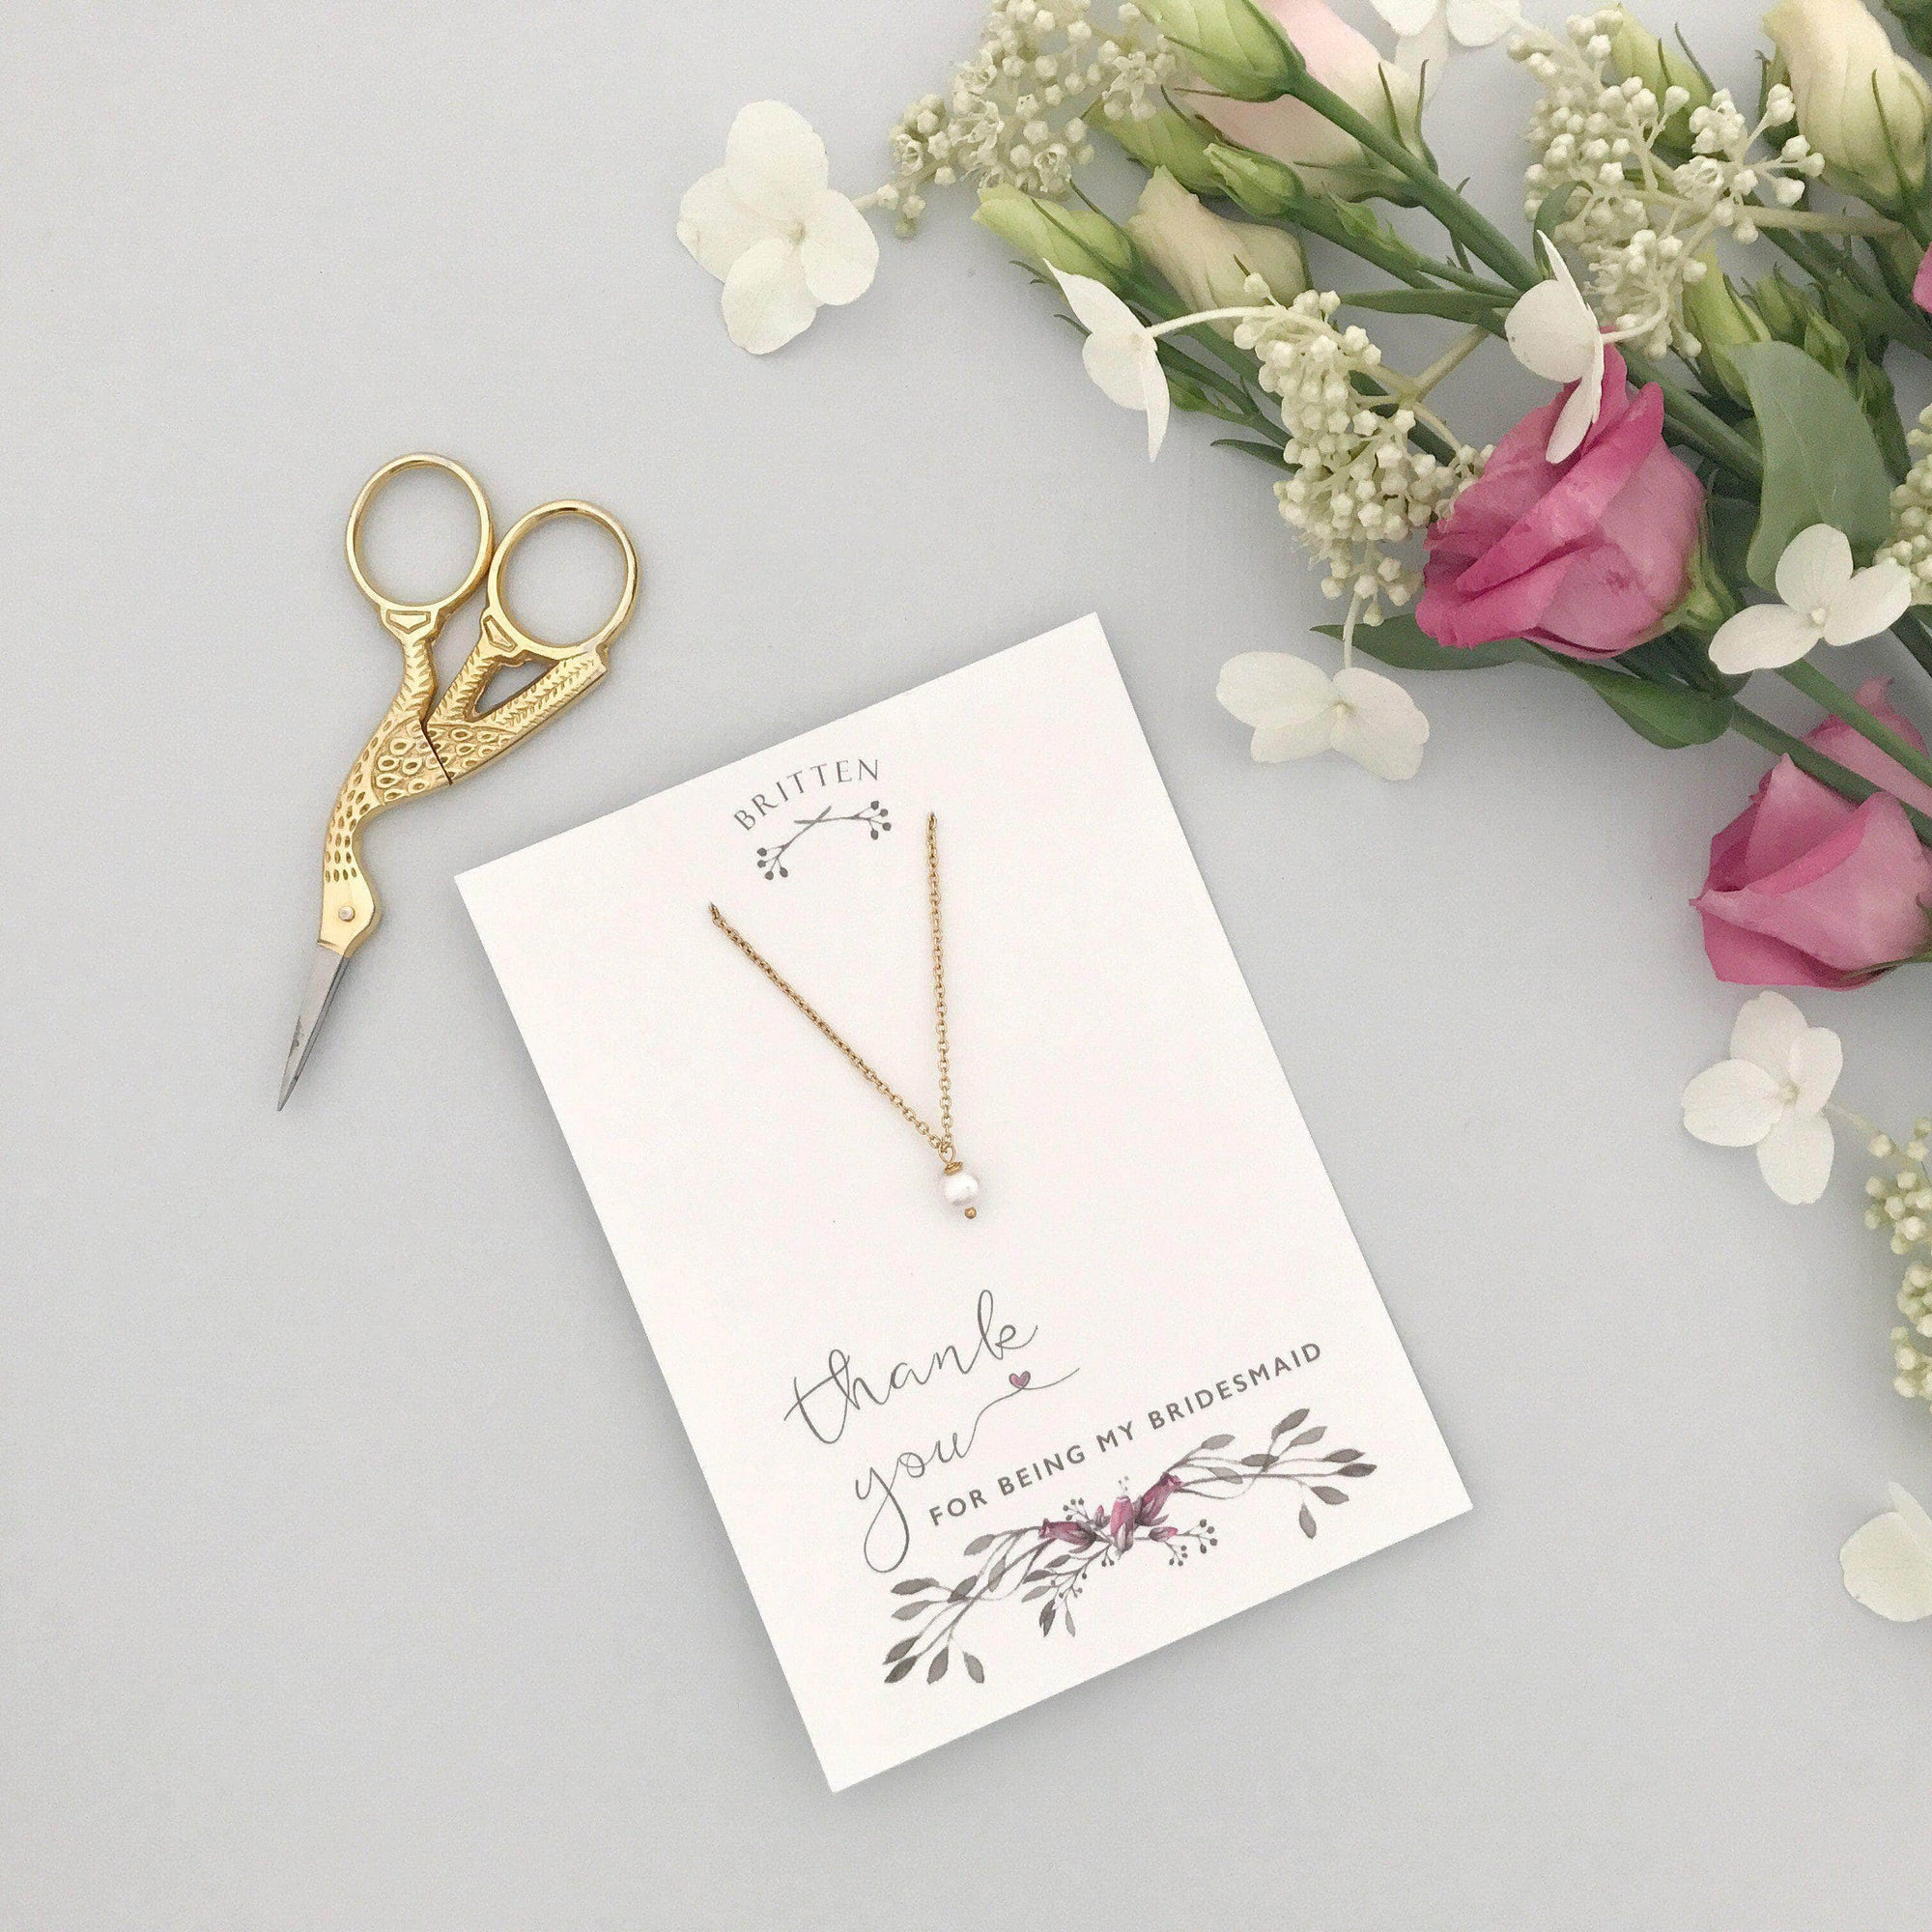 Bridesmaid Gift Gold Bridesmaid 'thank you' gift necklace - 'Seville' in gold